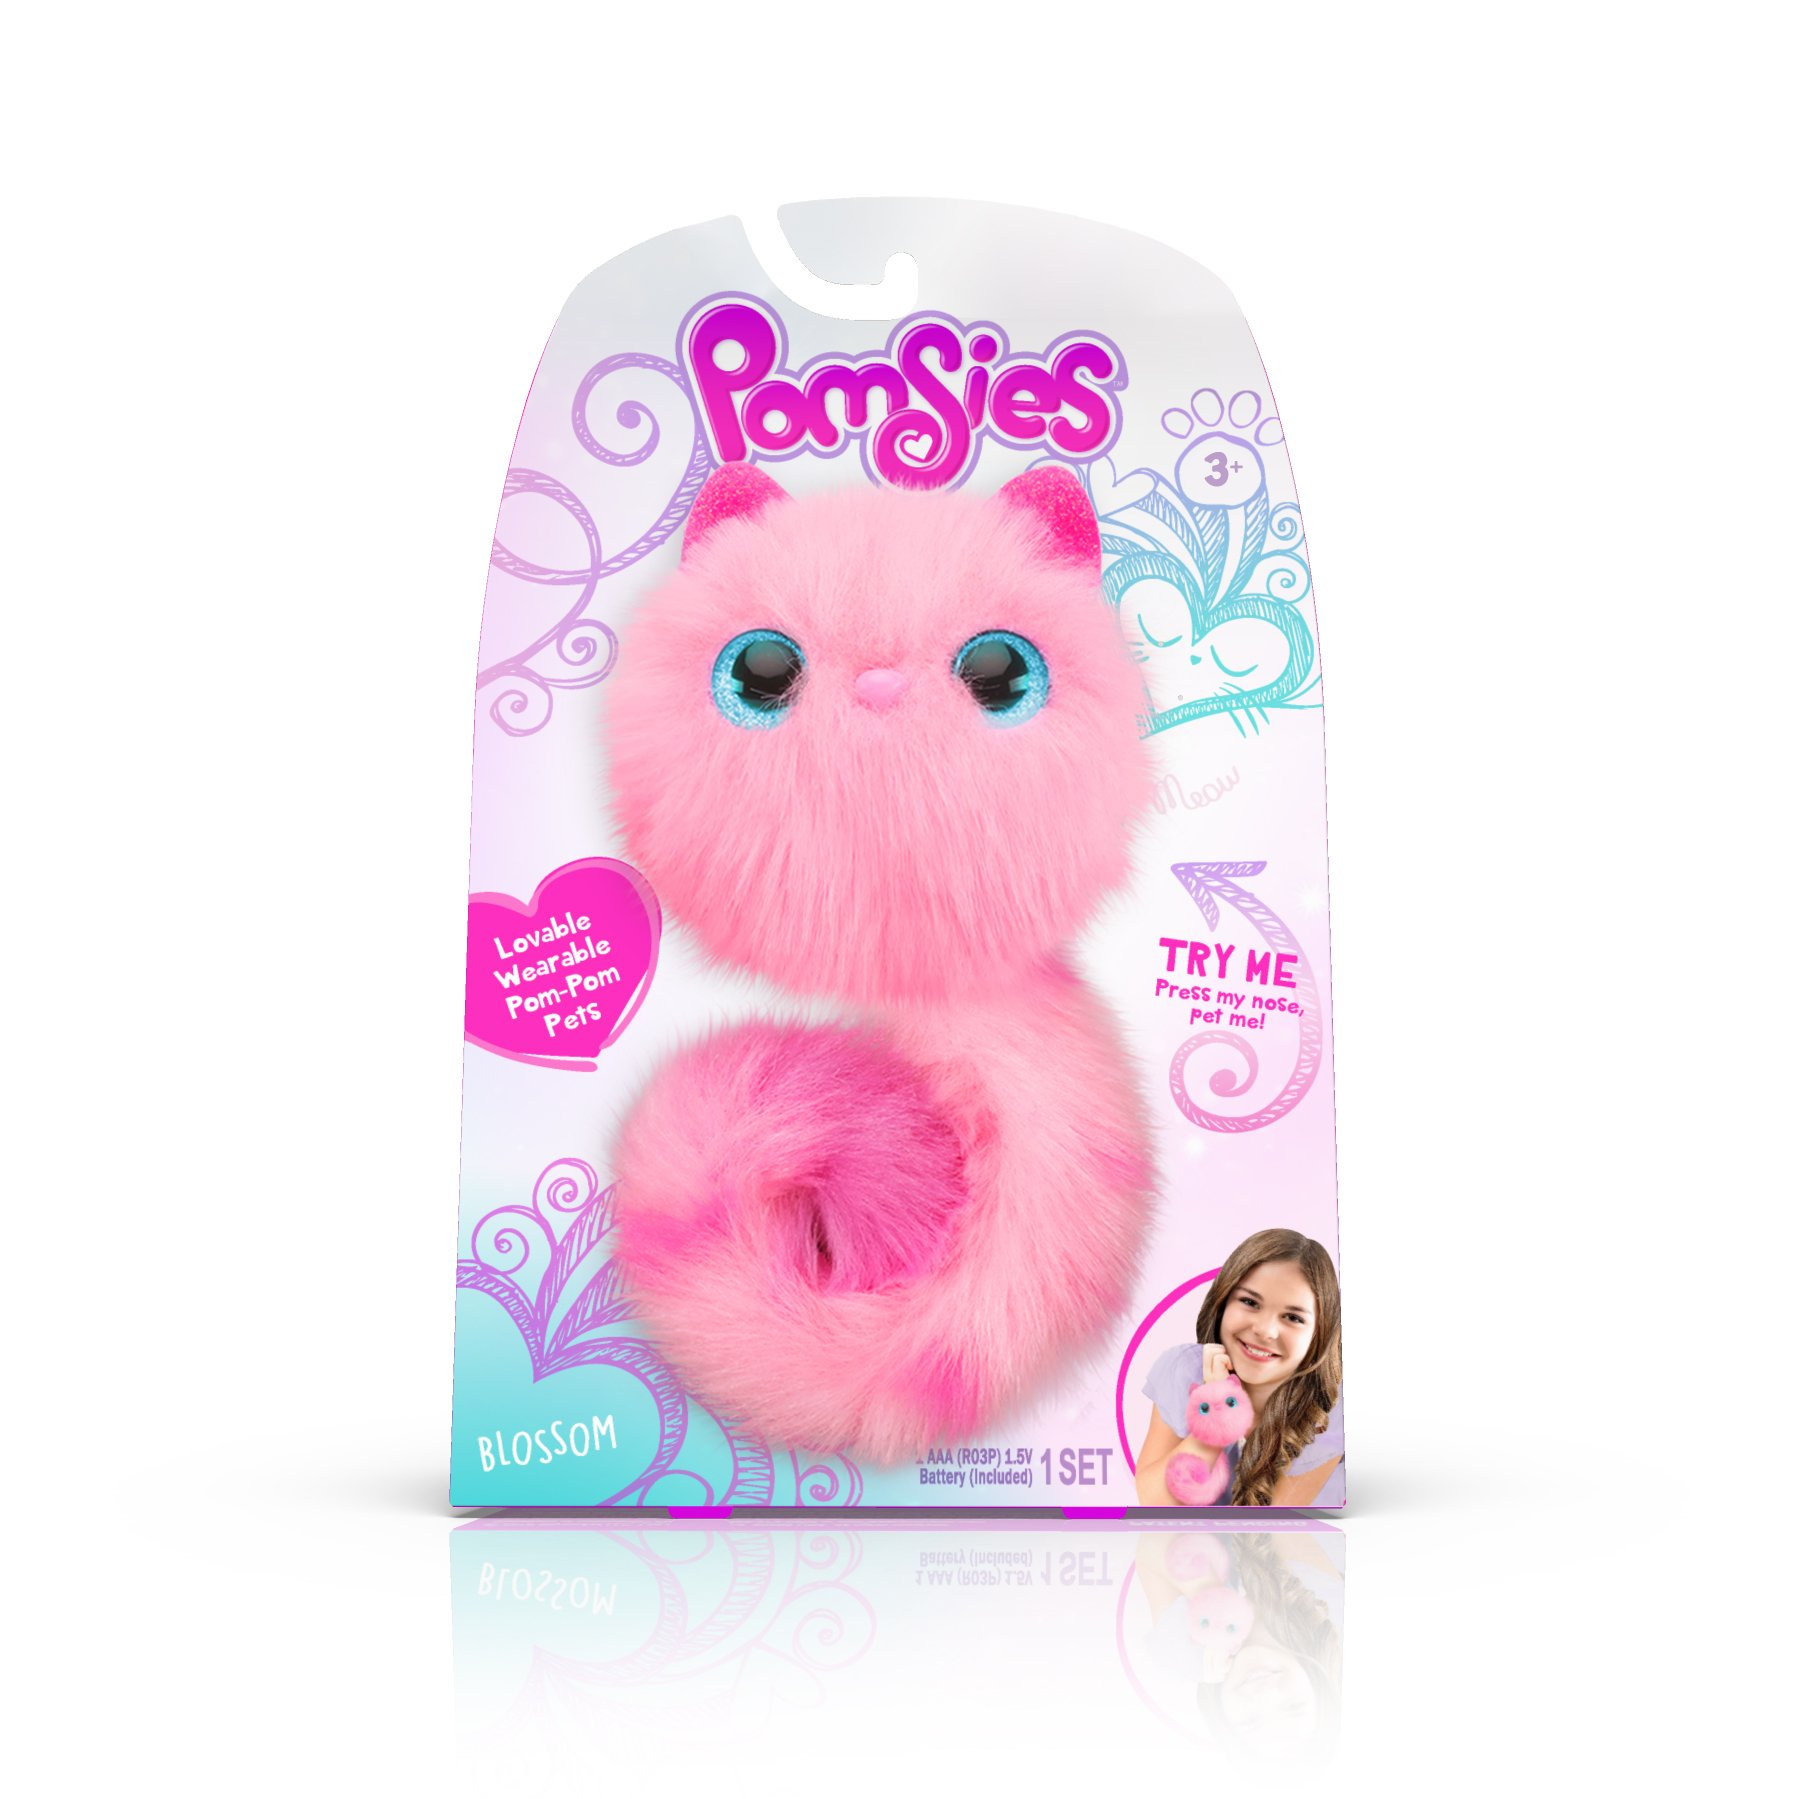 Pomsies Blossom Plush Interactive Toys, Pink